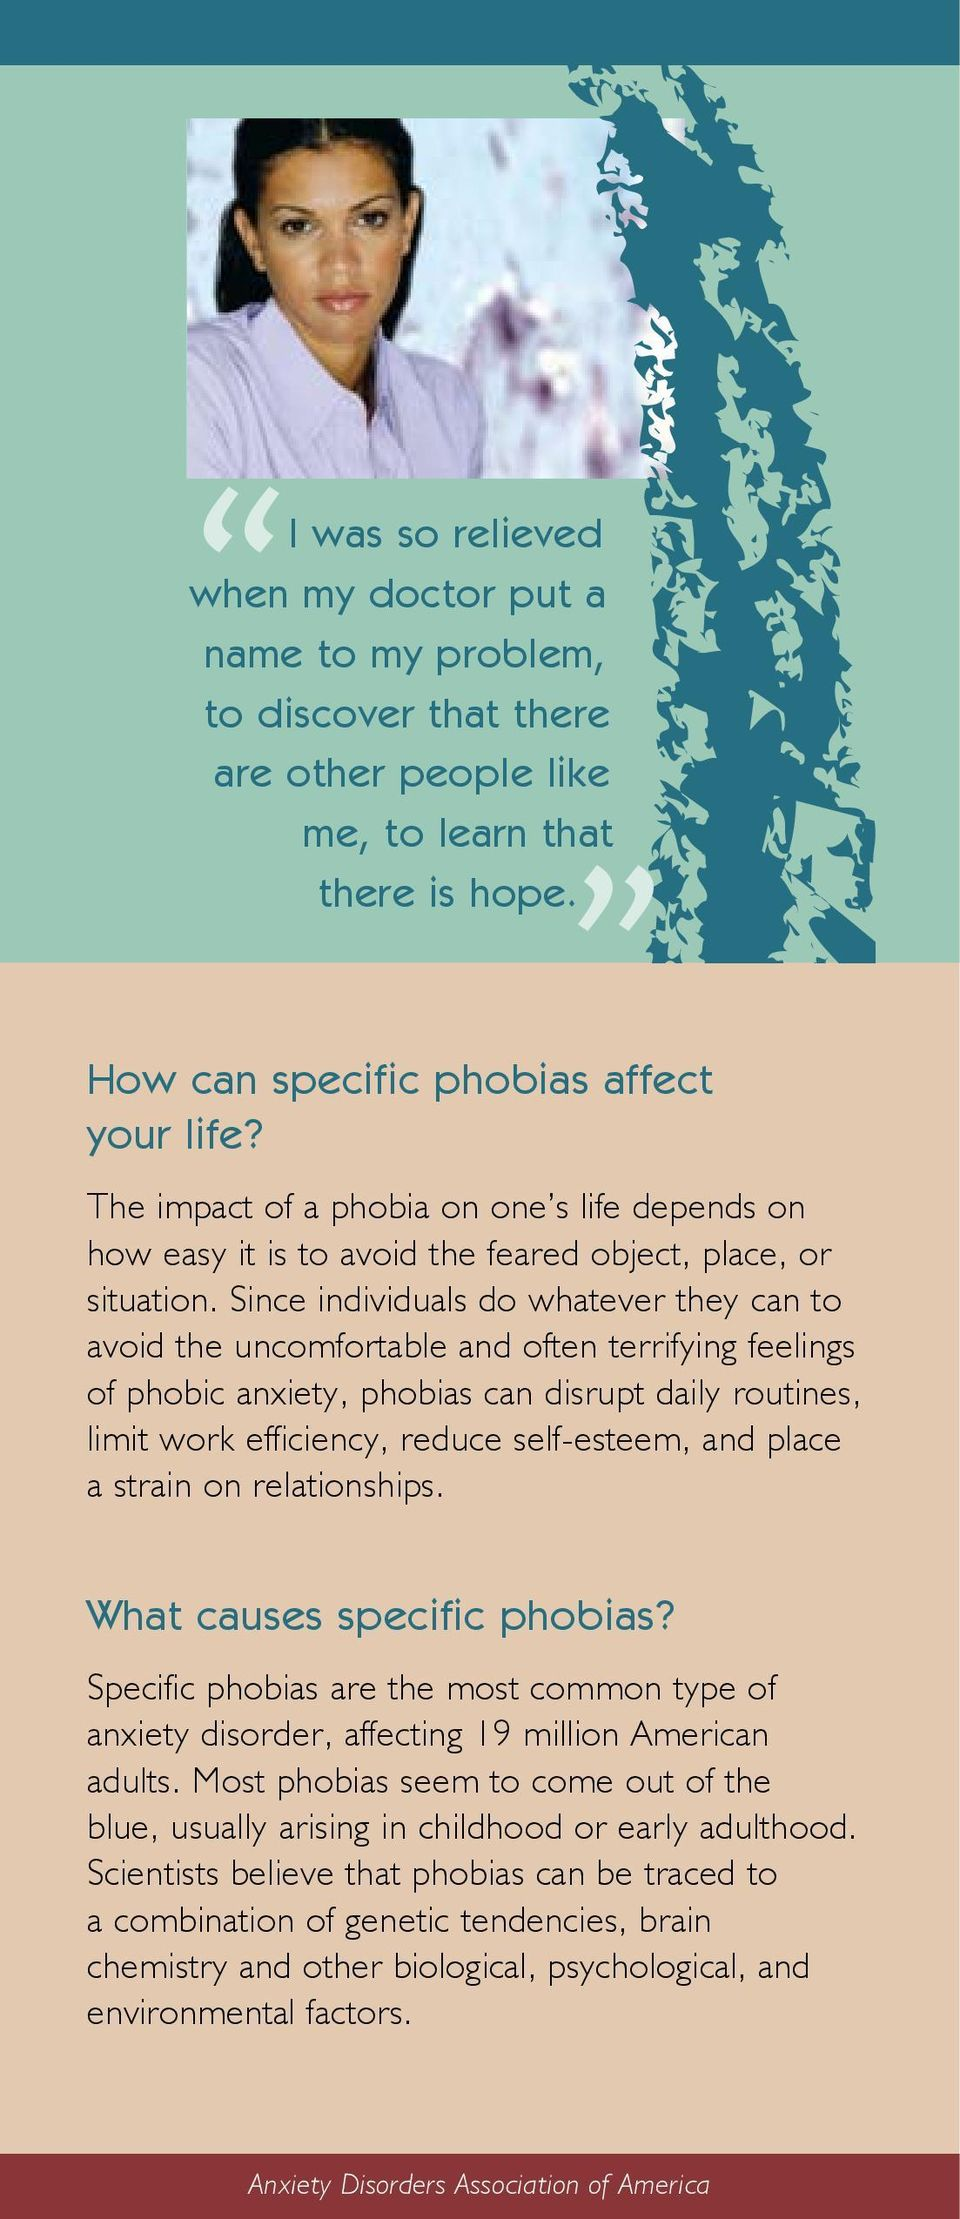 Since individuals do whatever they can to avoid the uncomfortable and often terrifying feelings of phobic anxiety, phobias can disrupt daily routines, limit work efficiency, reduce self-esteem, and